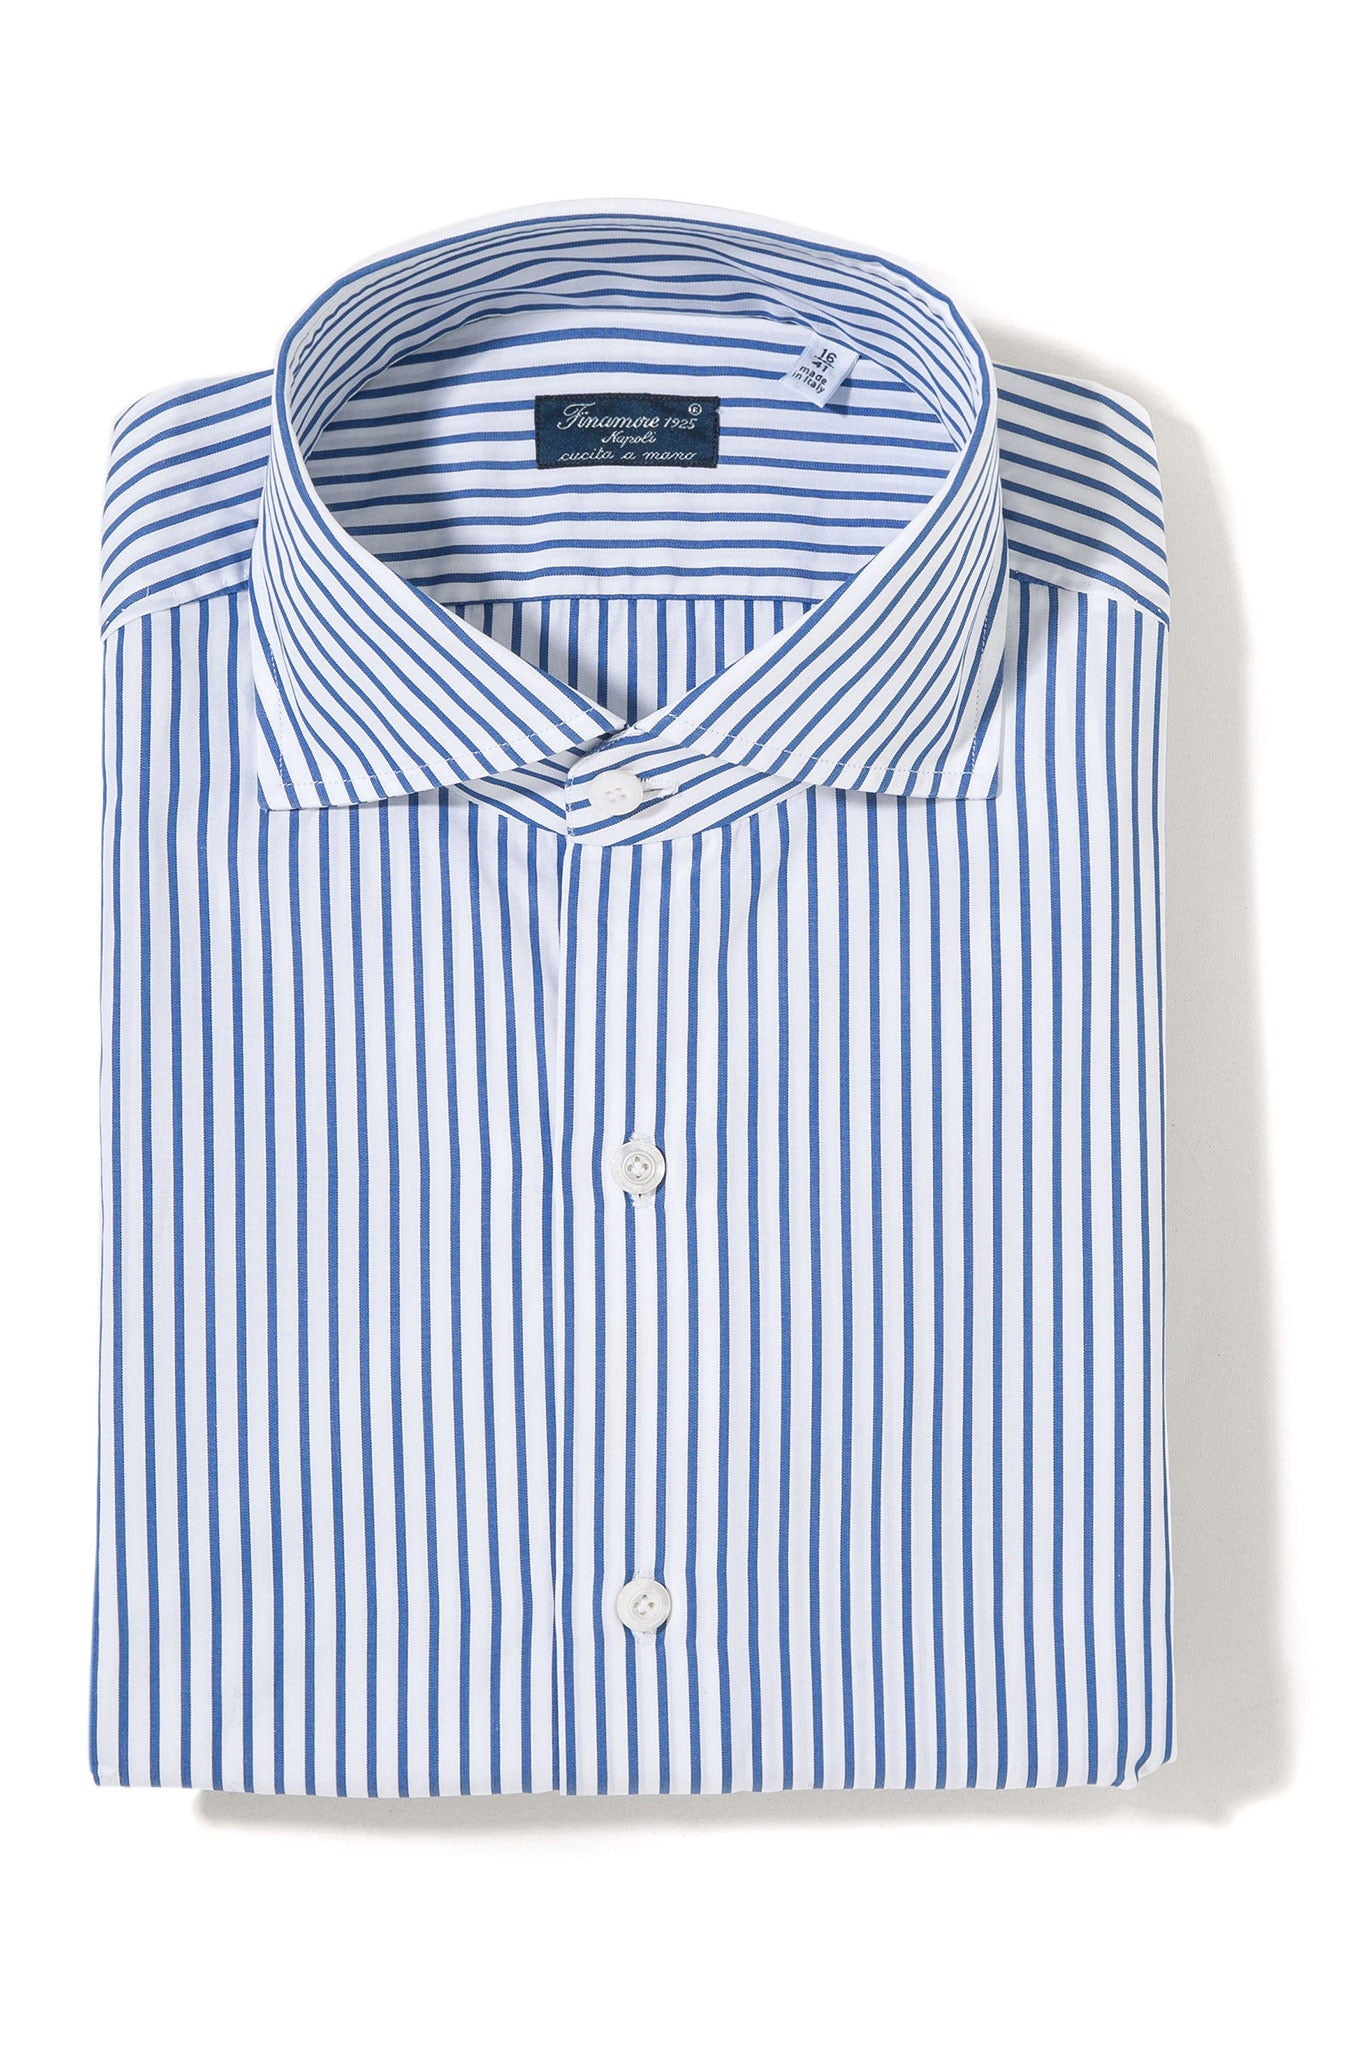 Finamore Newport Dress Shirt (4103412940893)